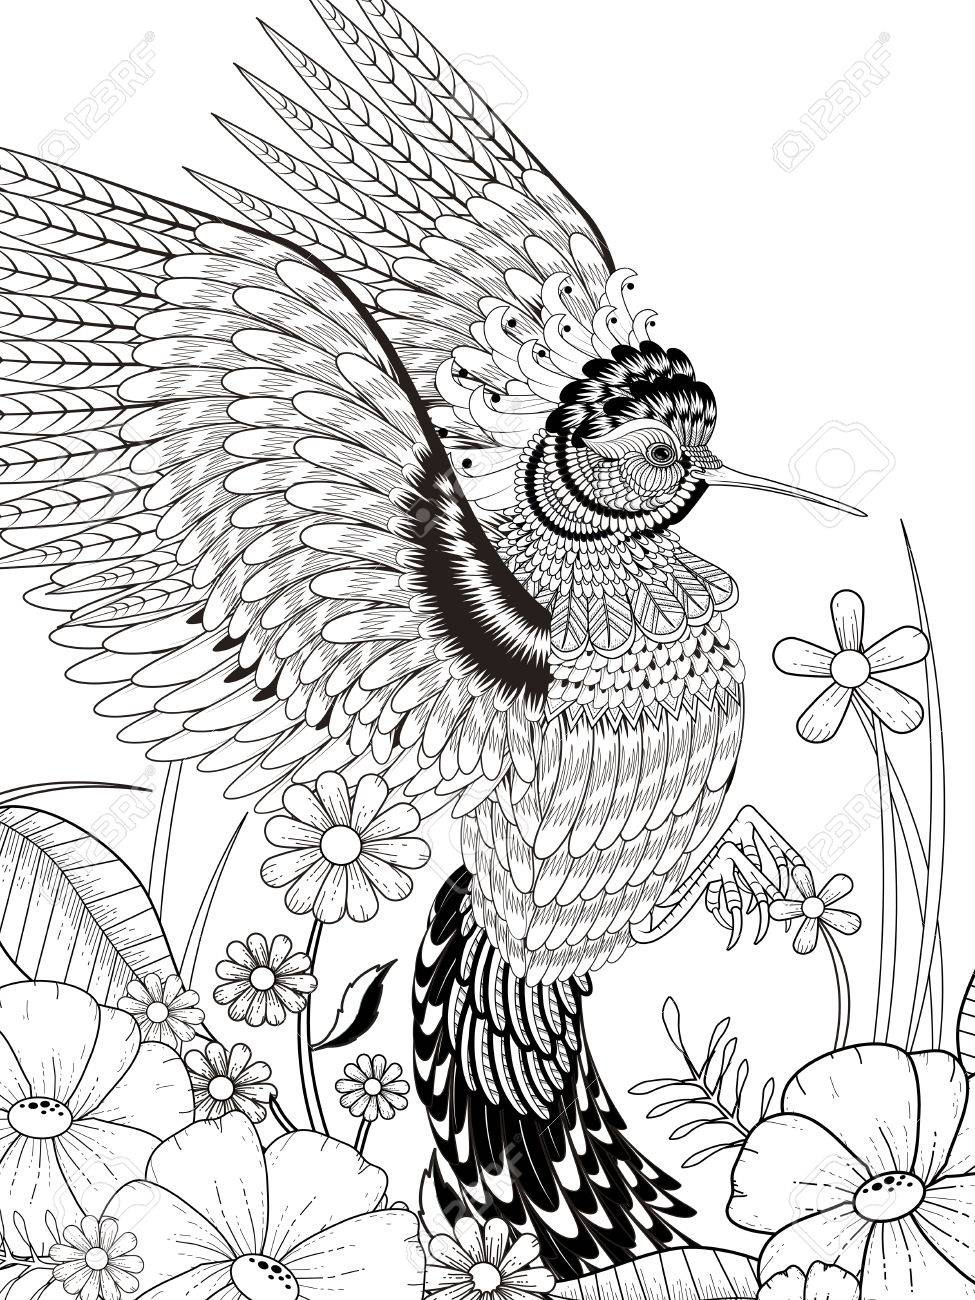 Lovely Hummingbird Coloring Page In Exquisite Line Royalty Free